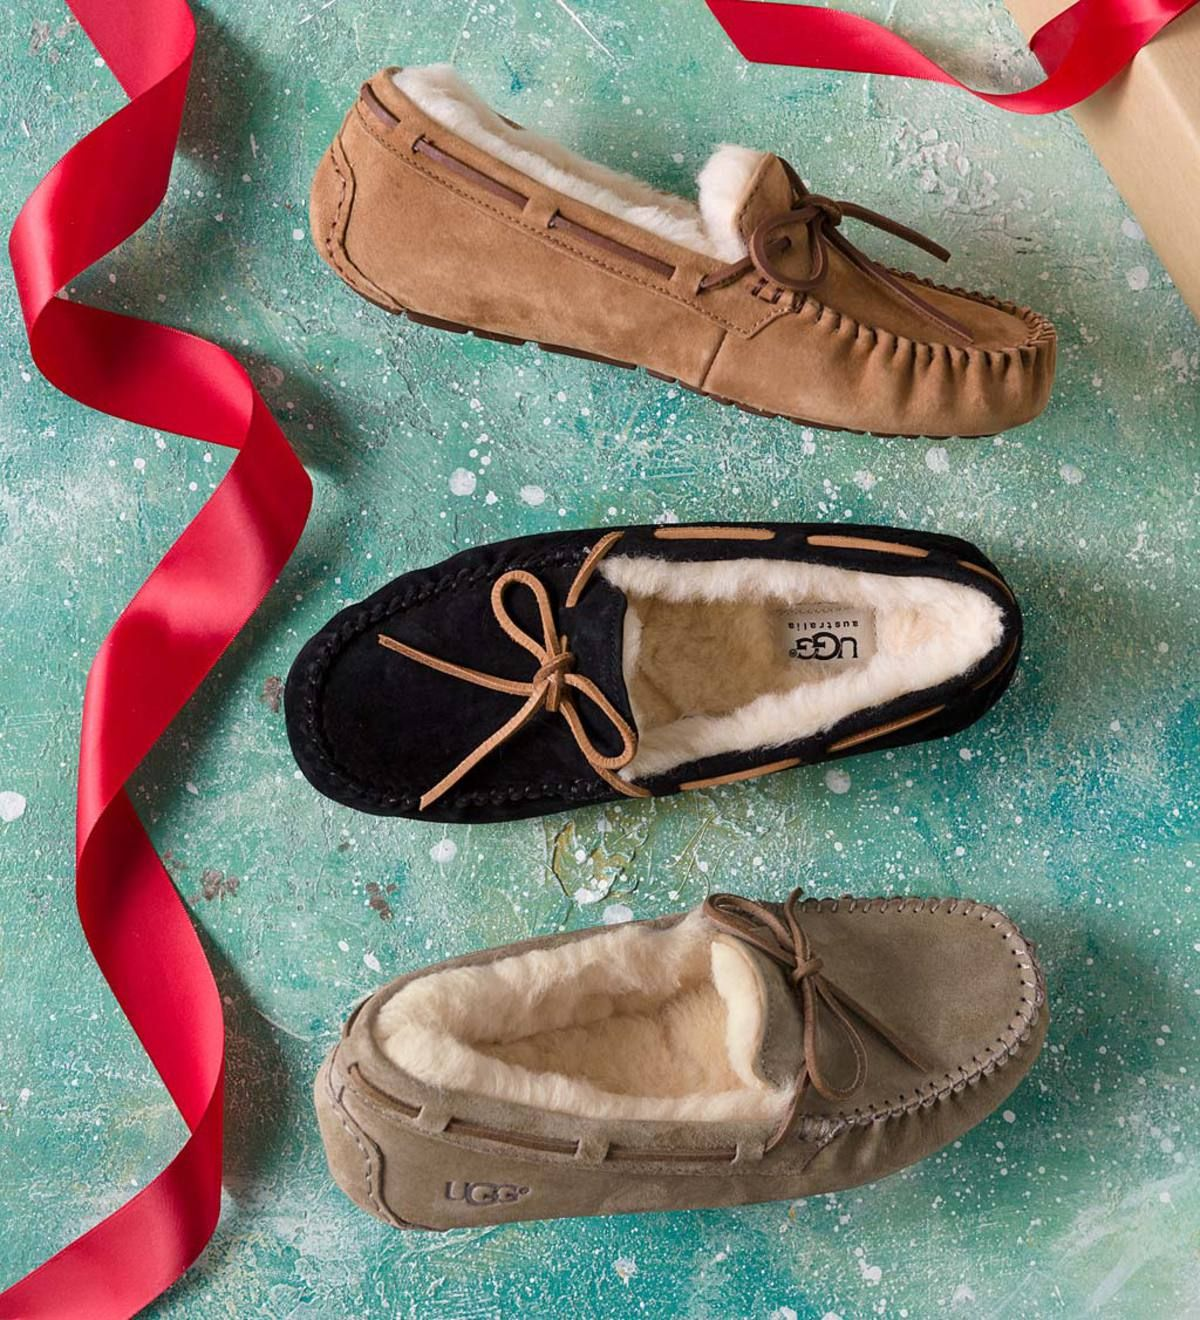 50192e6115f UGG® Women's Dakota Moccasin Slippers has a suede upper that's fully ...